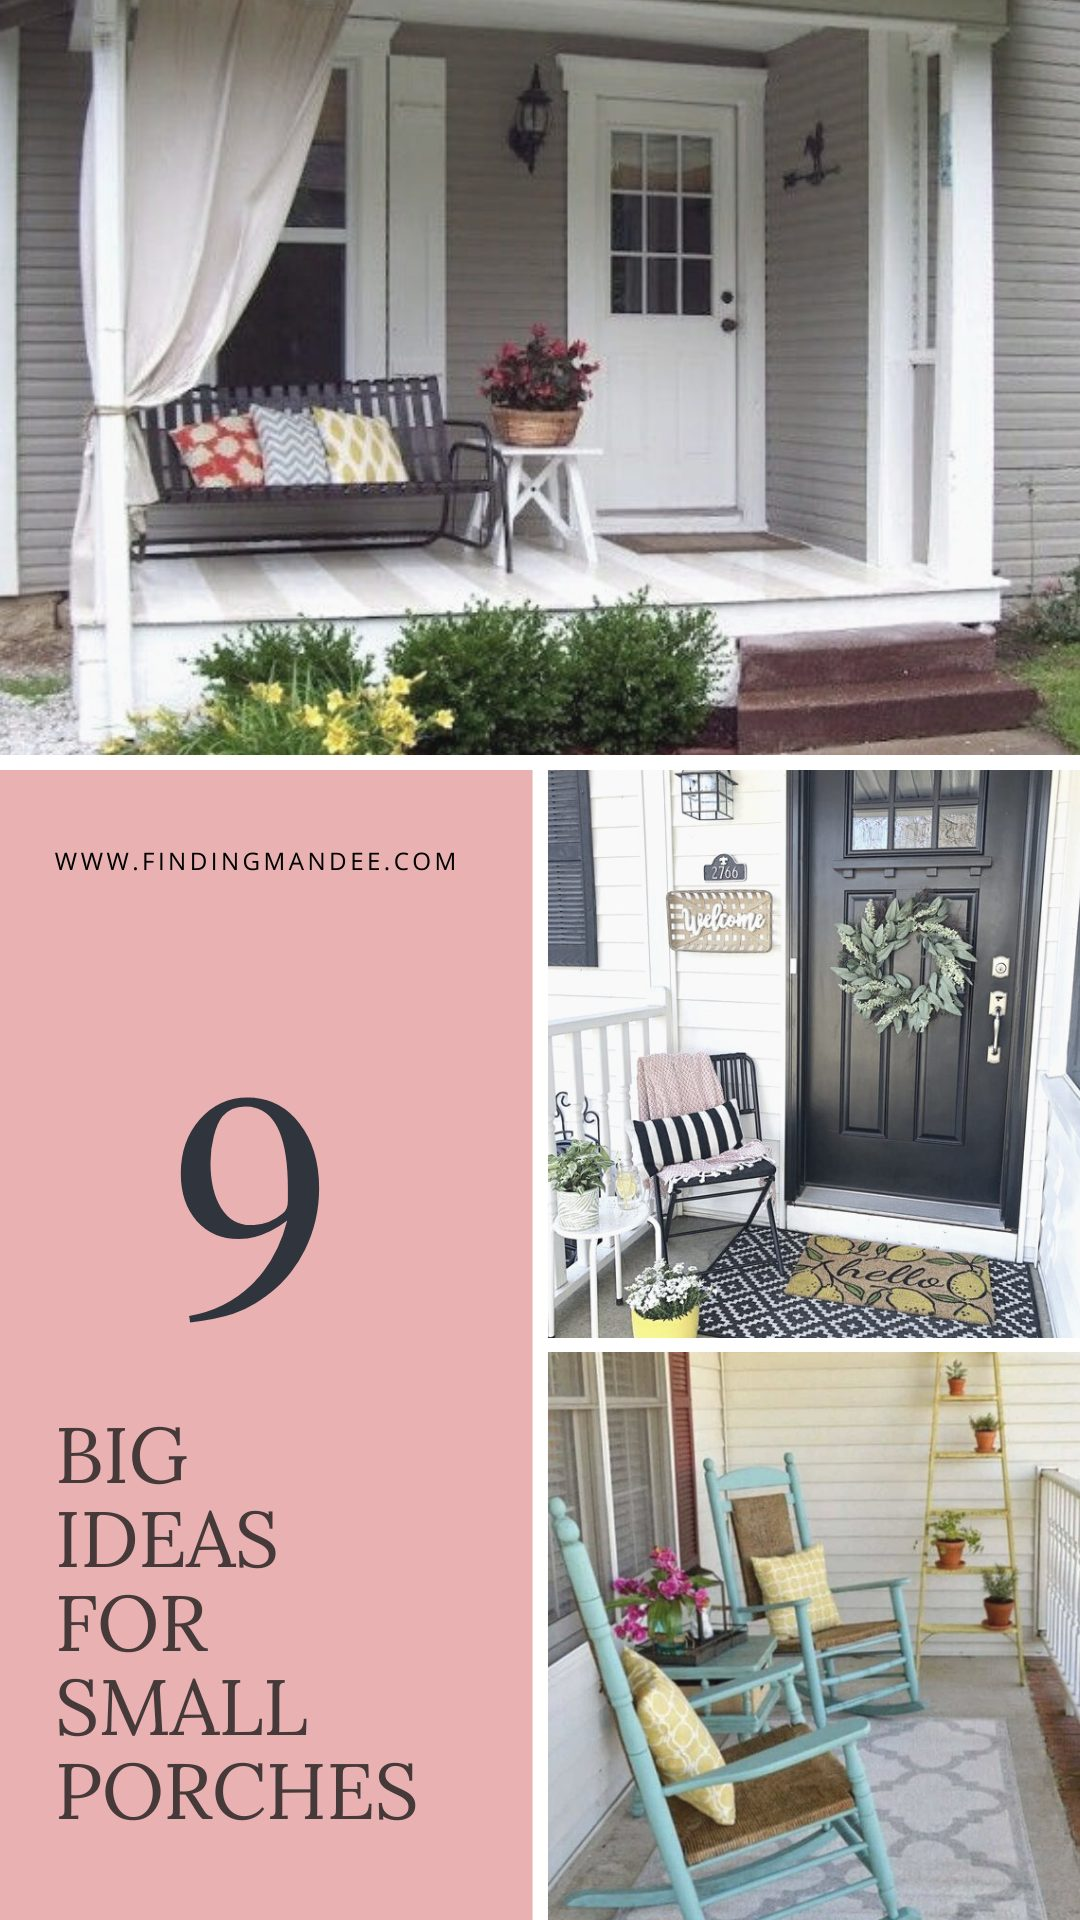 9 Big Ideas for Small Porches | Finding Mandee